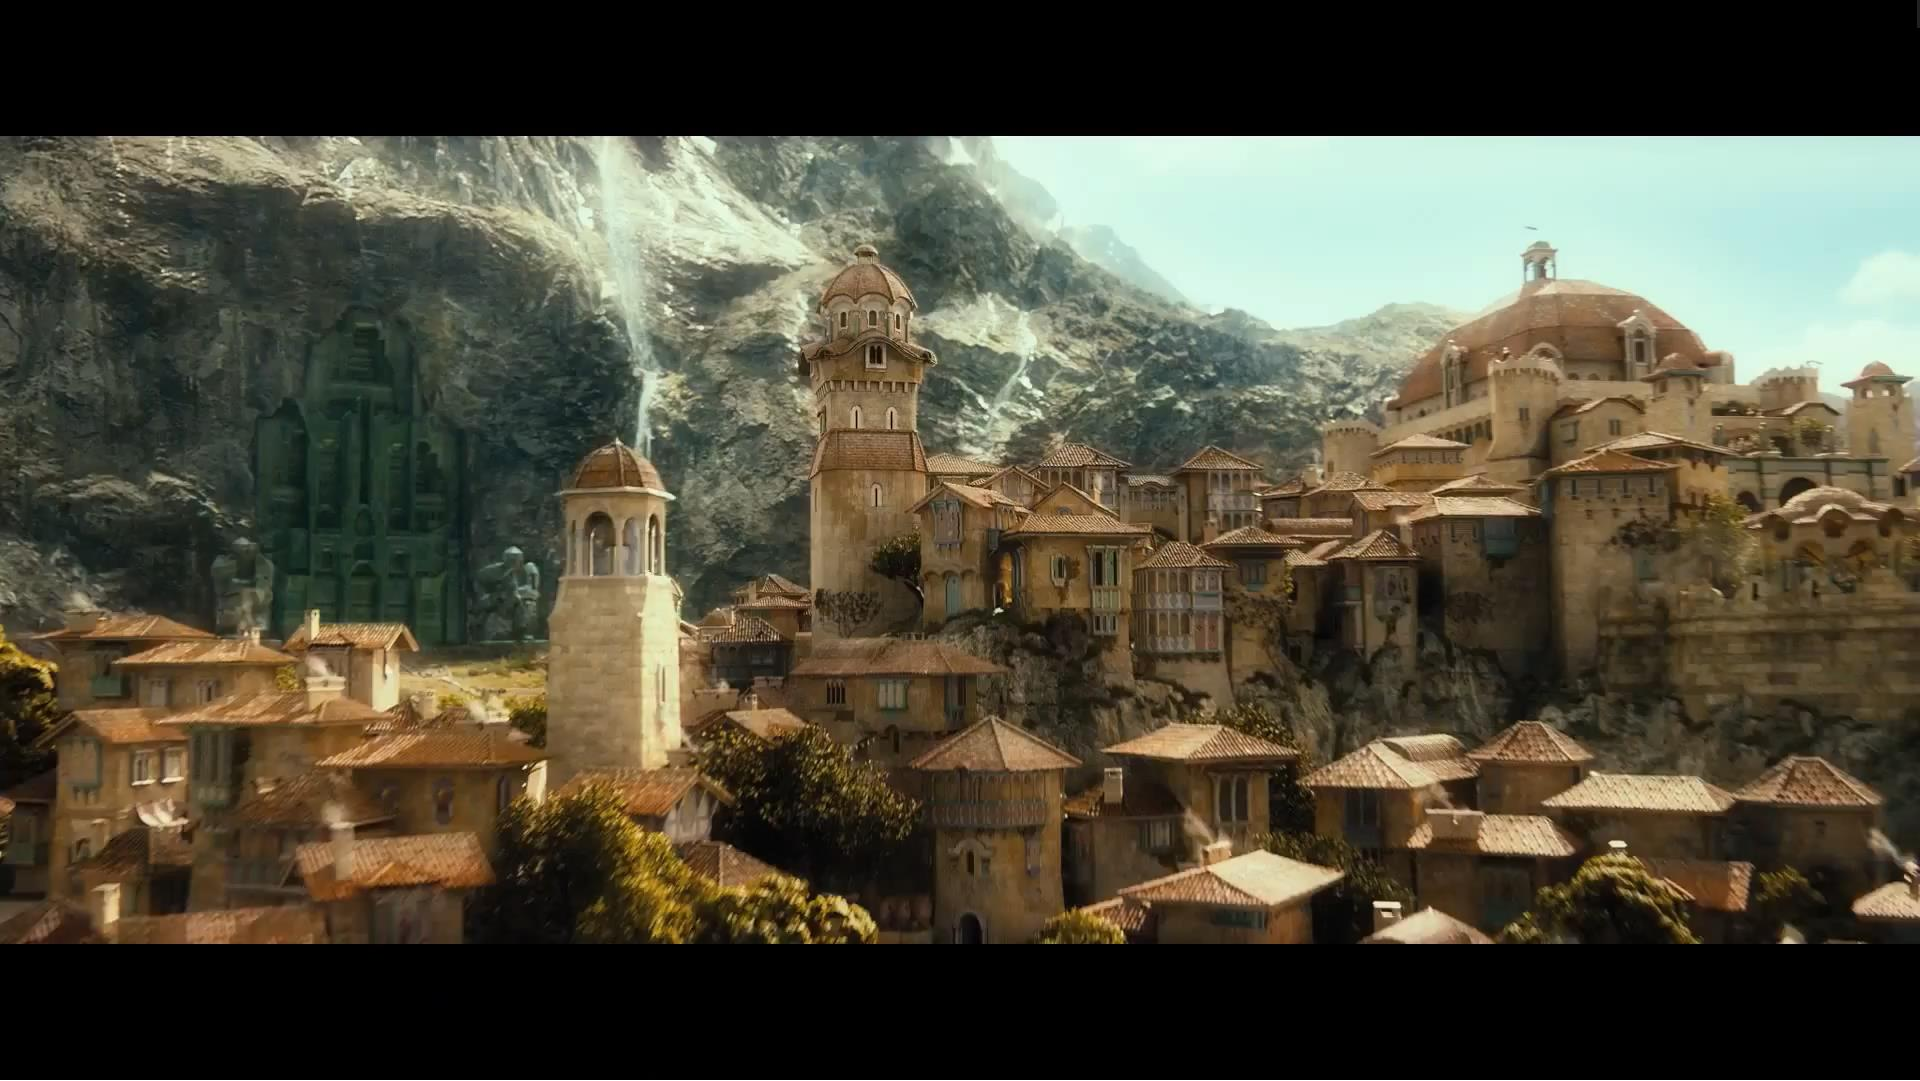 erebor s entrance in the background and it looks absolutely stunning 1920x1081